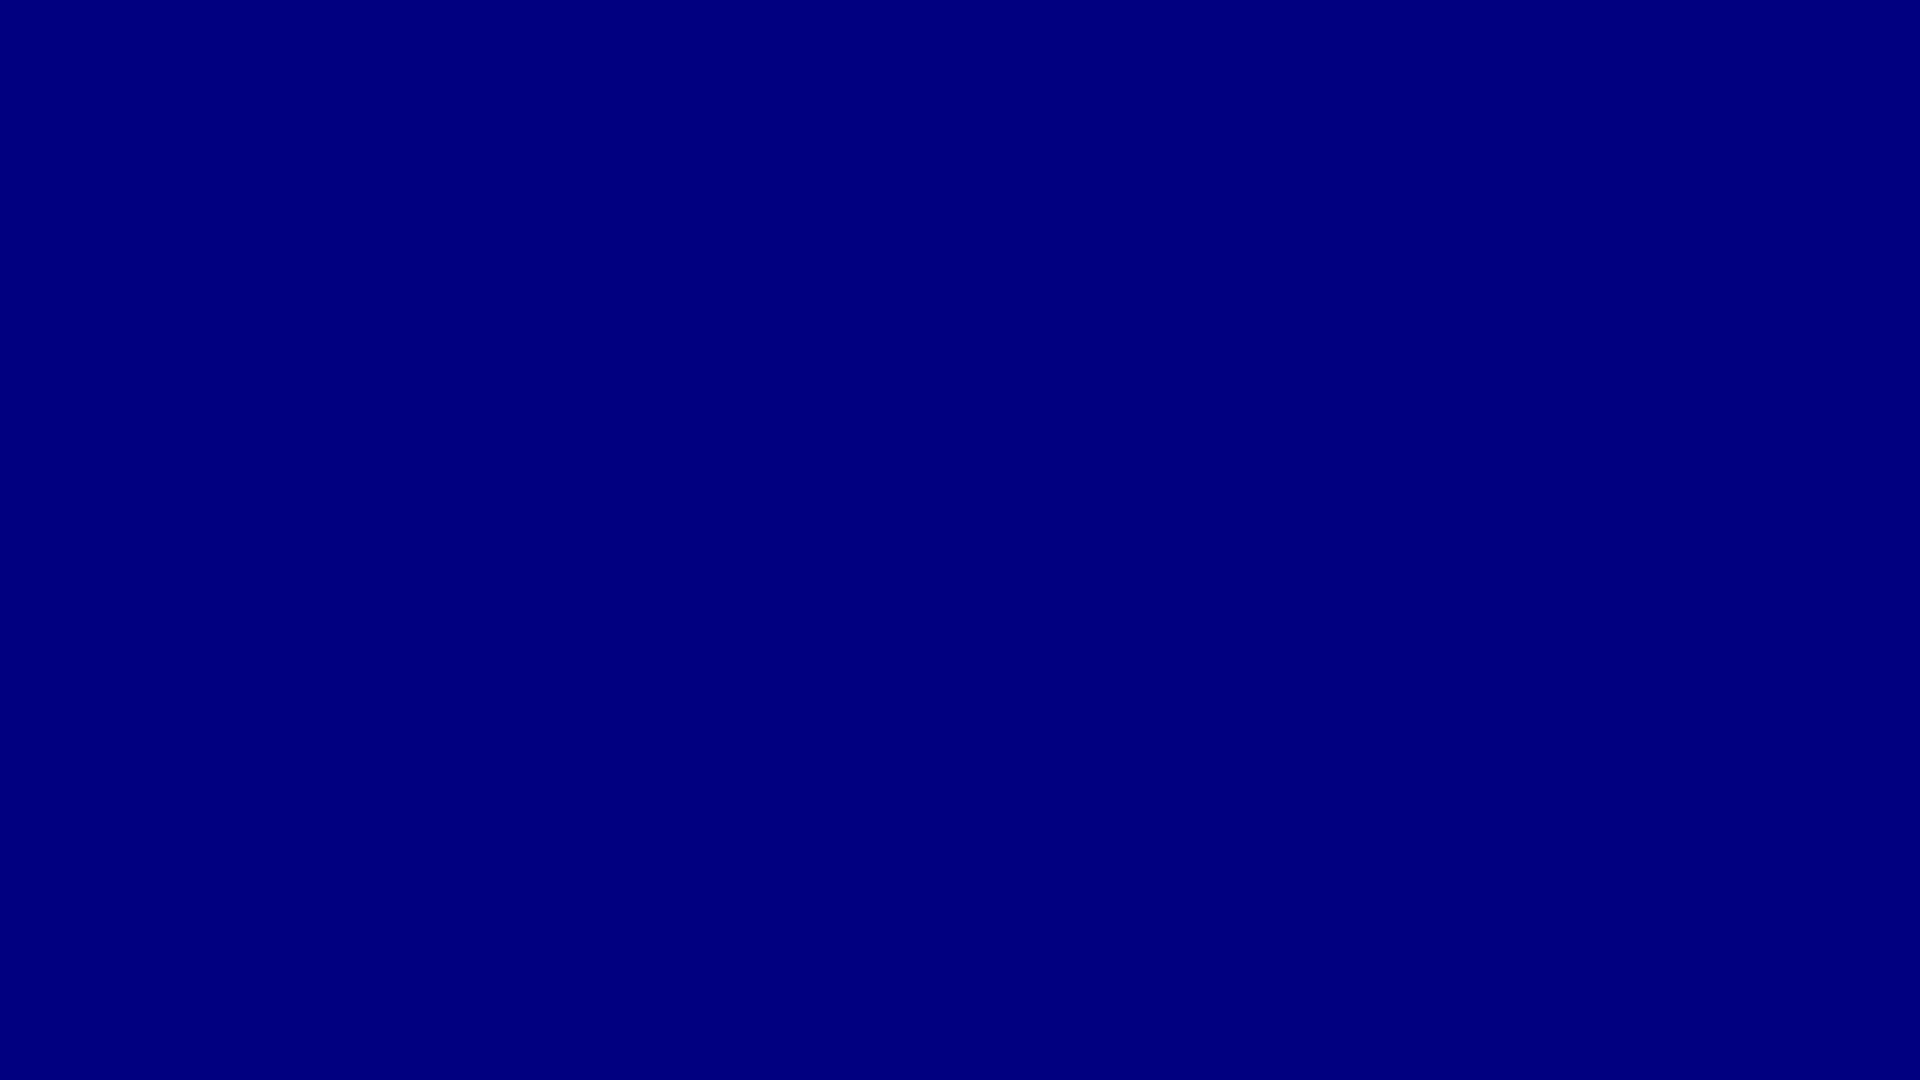 navy blue solid color background